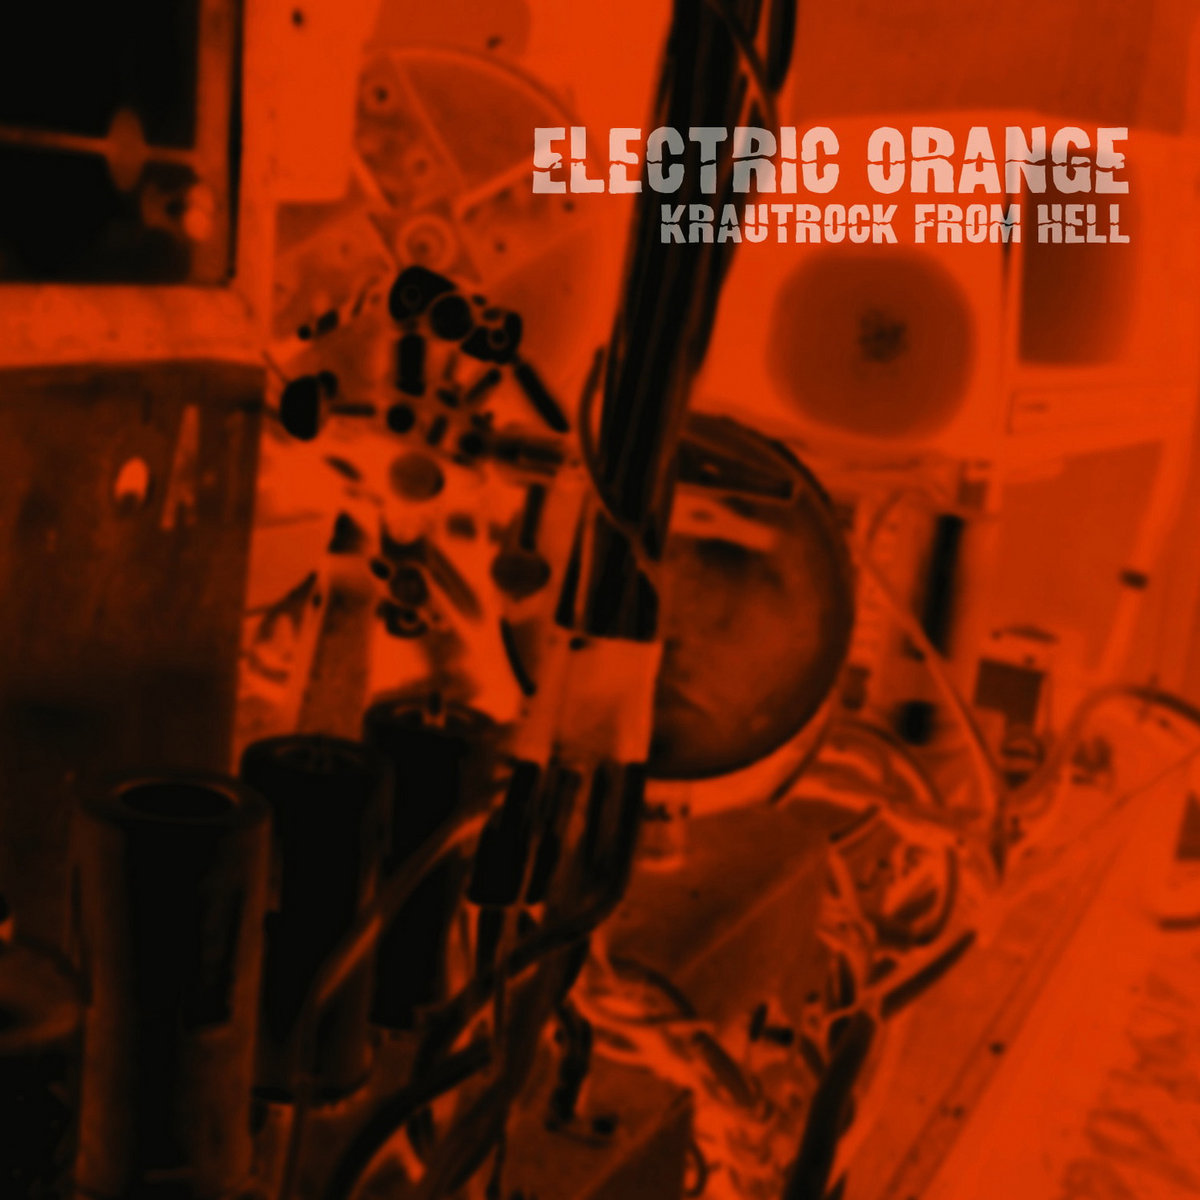 Image result for krautrock from hell electric orange